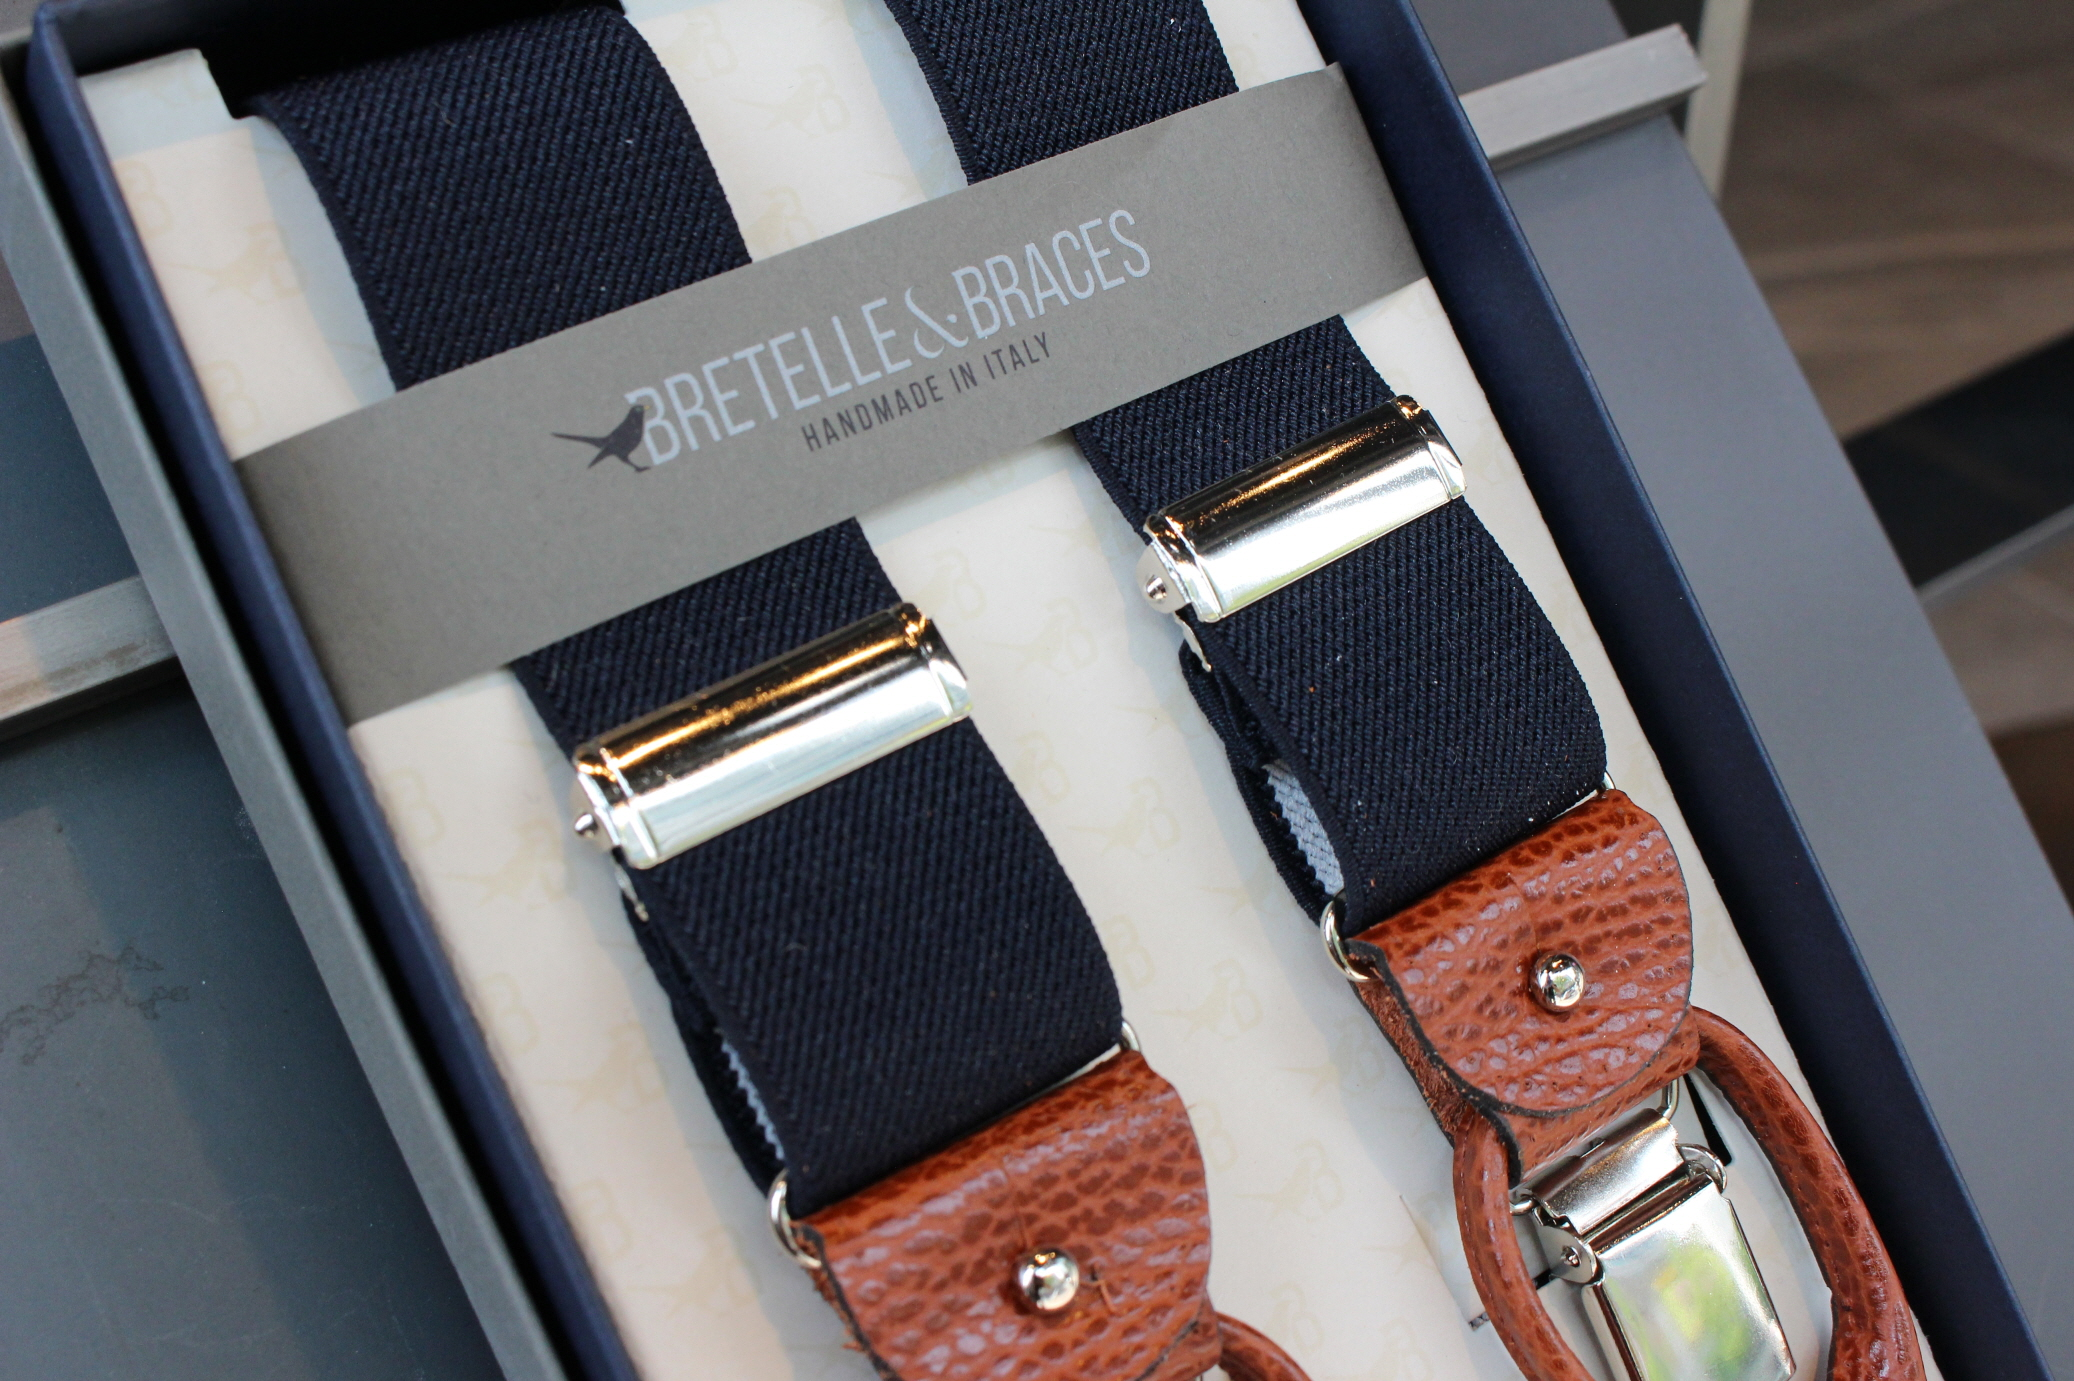 BRETELLE BRACES - navy & brown